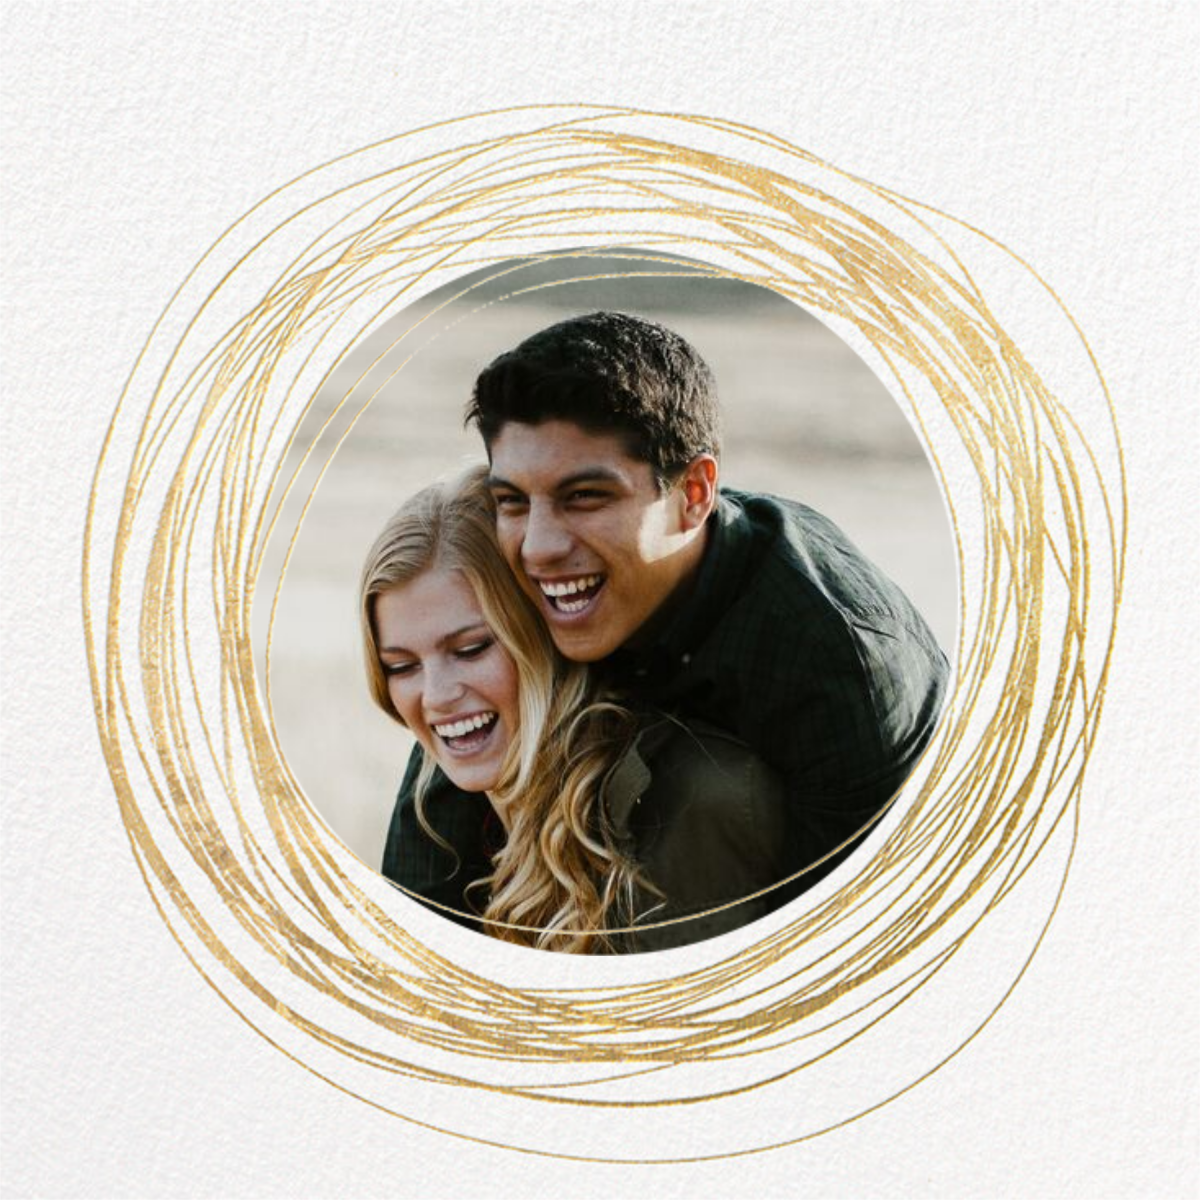 Winter Wreath (Save the Date) - White/Gold - Paperless Post - Photo